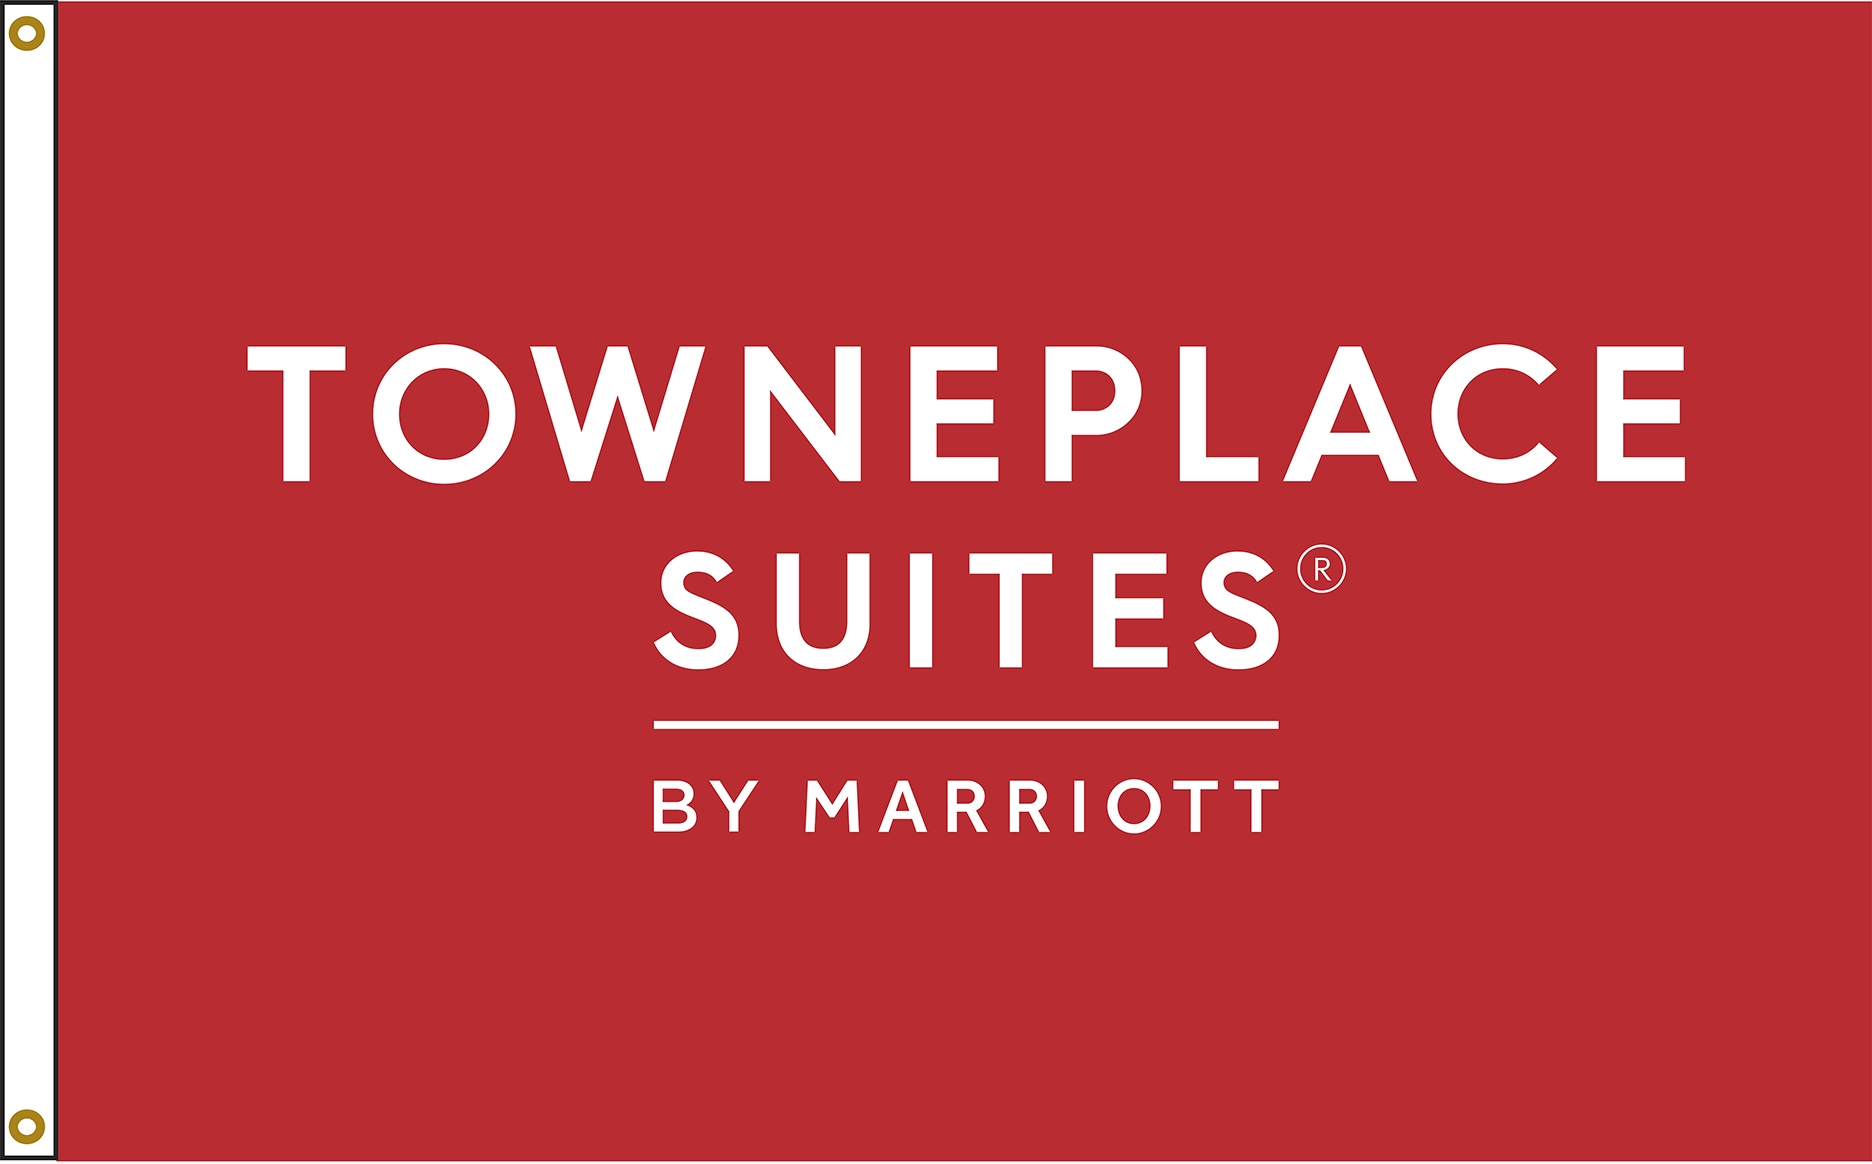 Towne Place Suites Flag